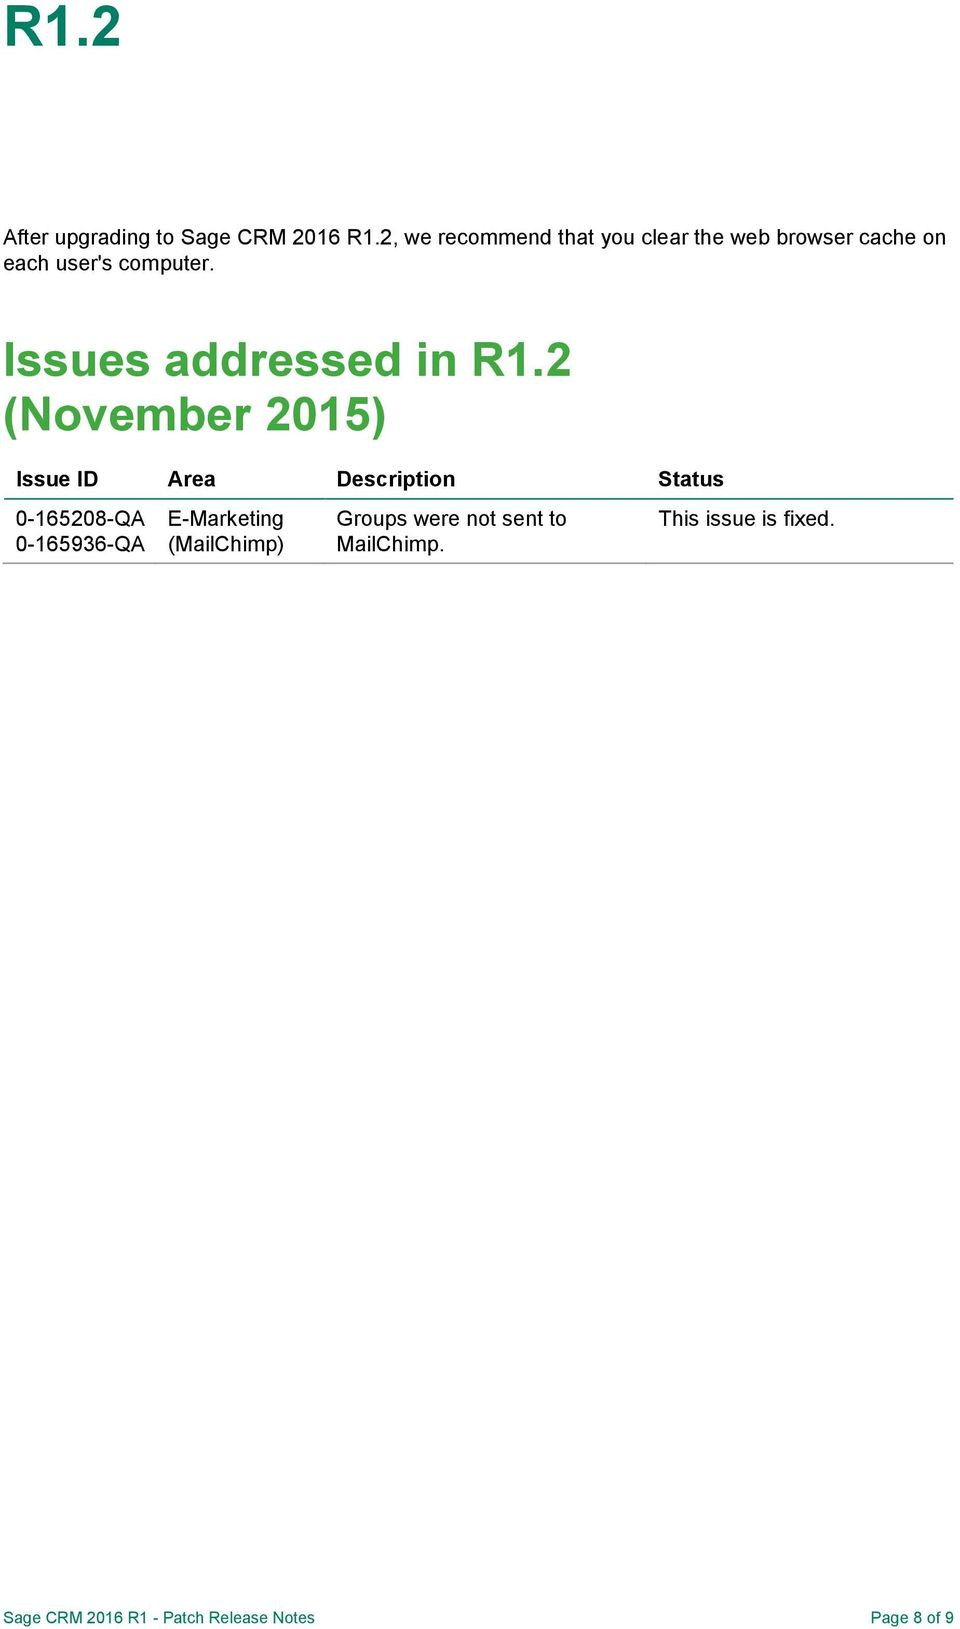 Issues addressed in R1.